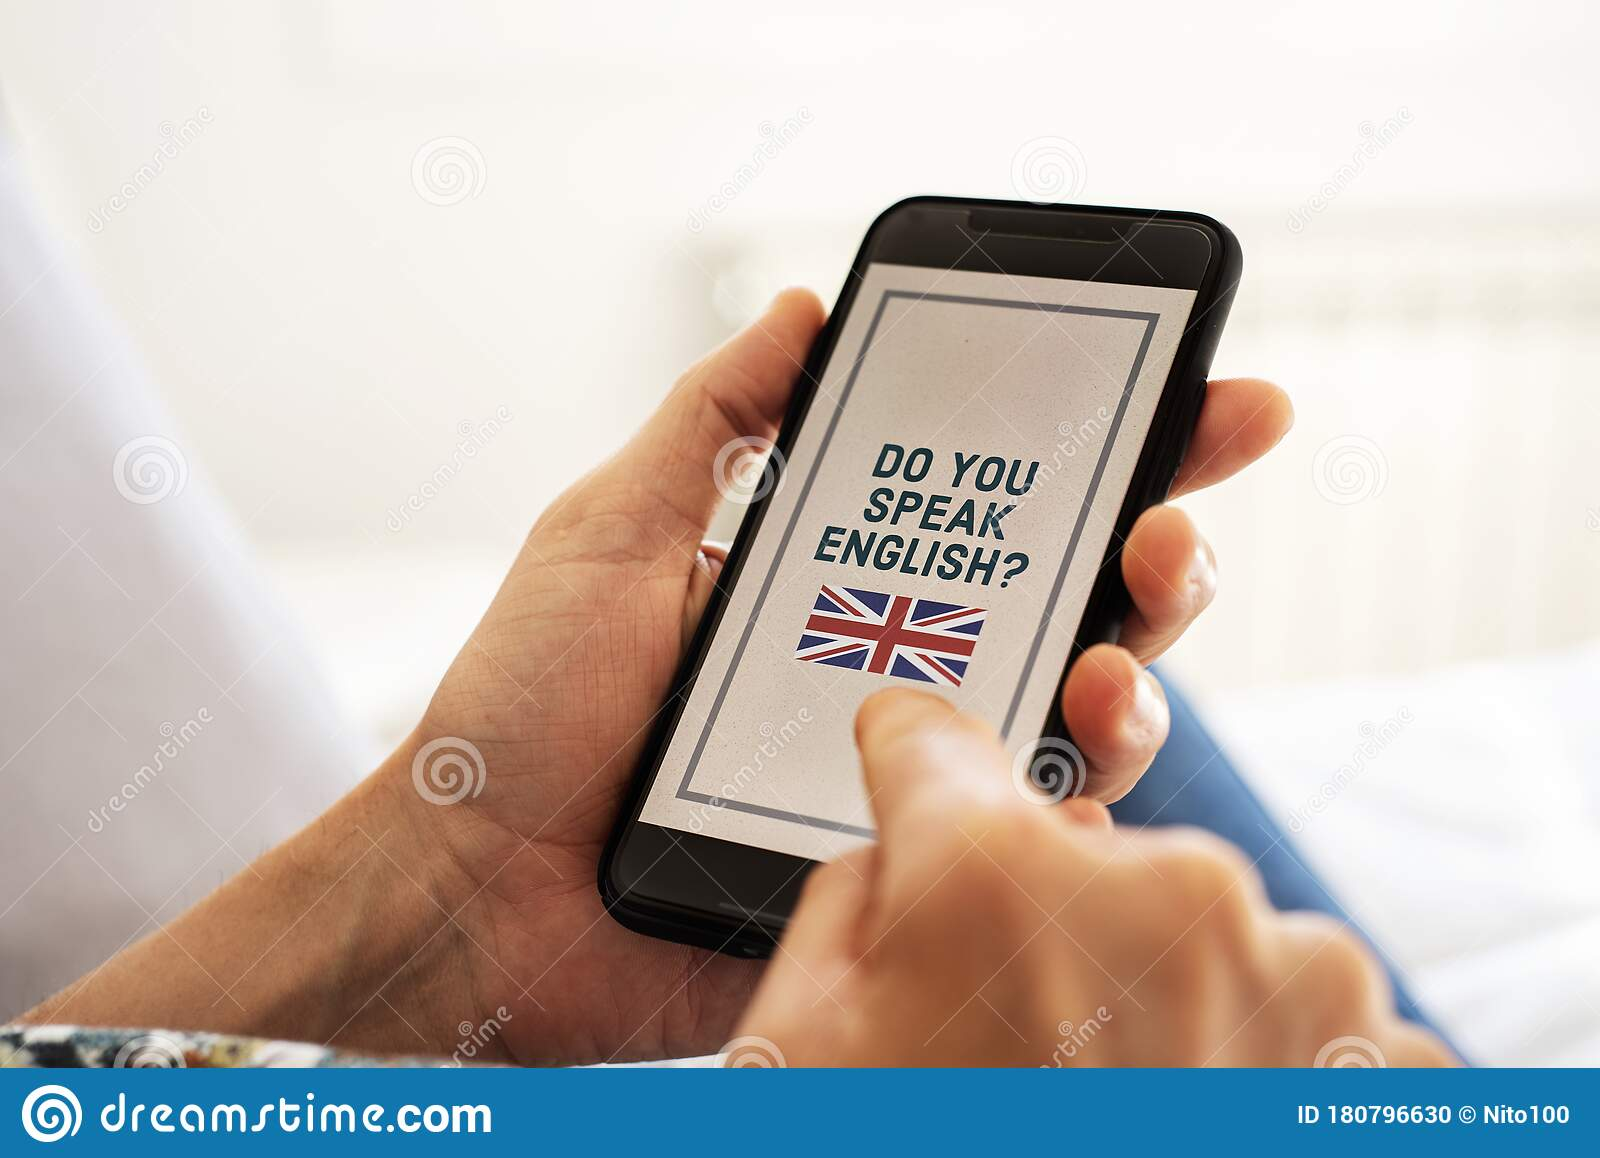 Text Do You Speak German In German In A Smartphone Stock Photo Image Of Home Horizontal 180796630